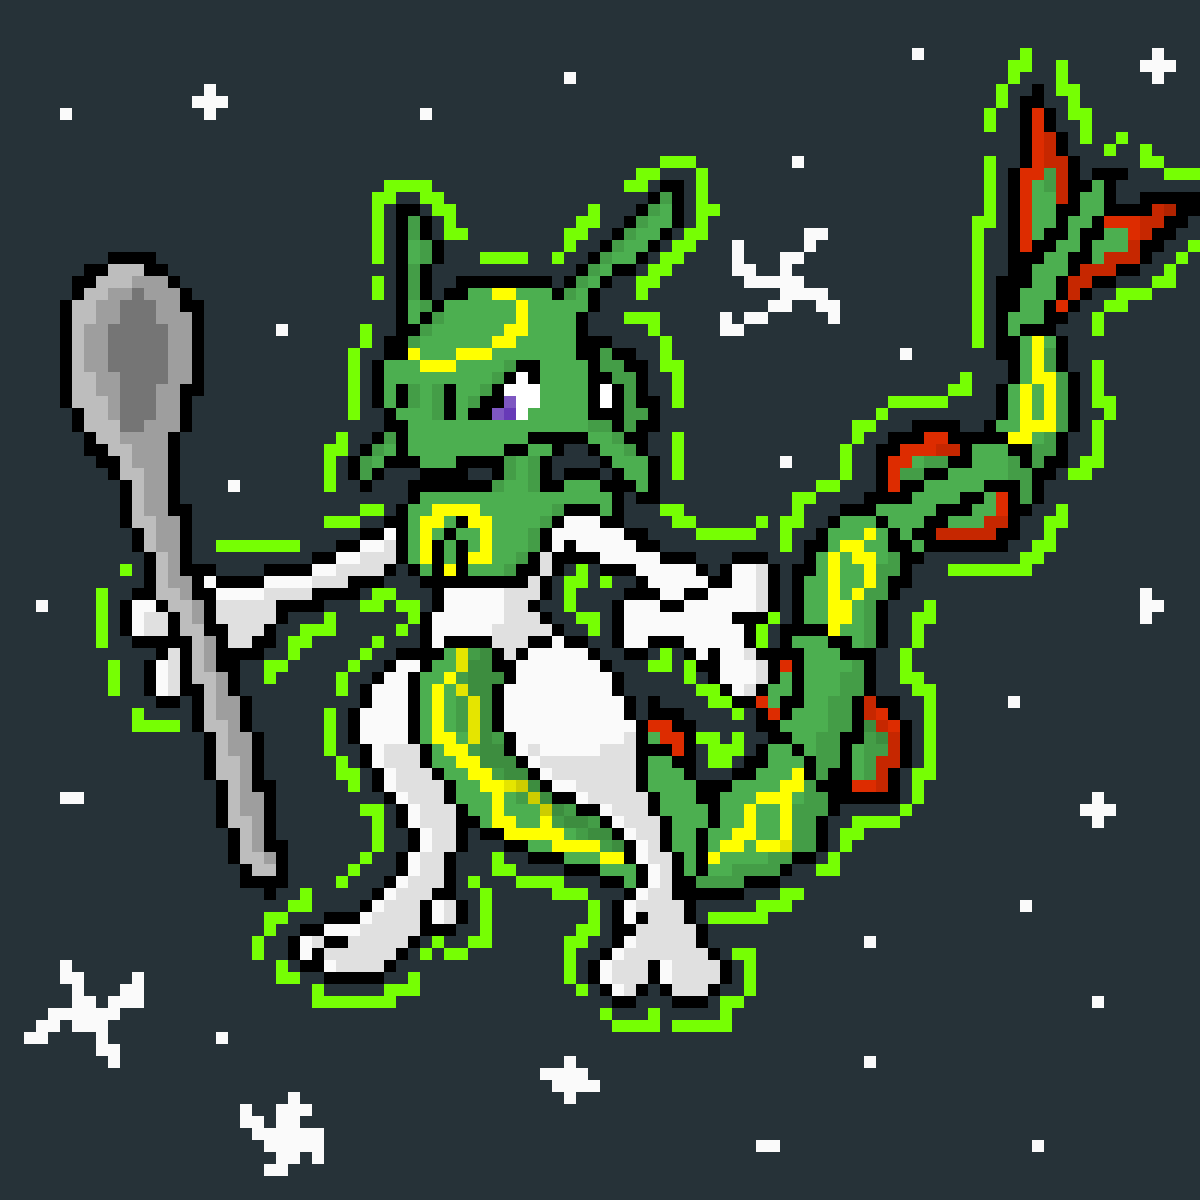 I Present Thee Mewquaza! (Rayquaza, Mewtwo)